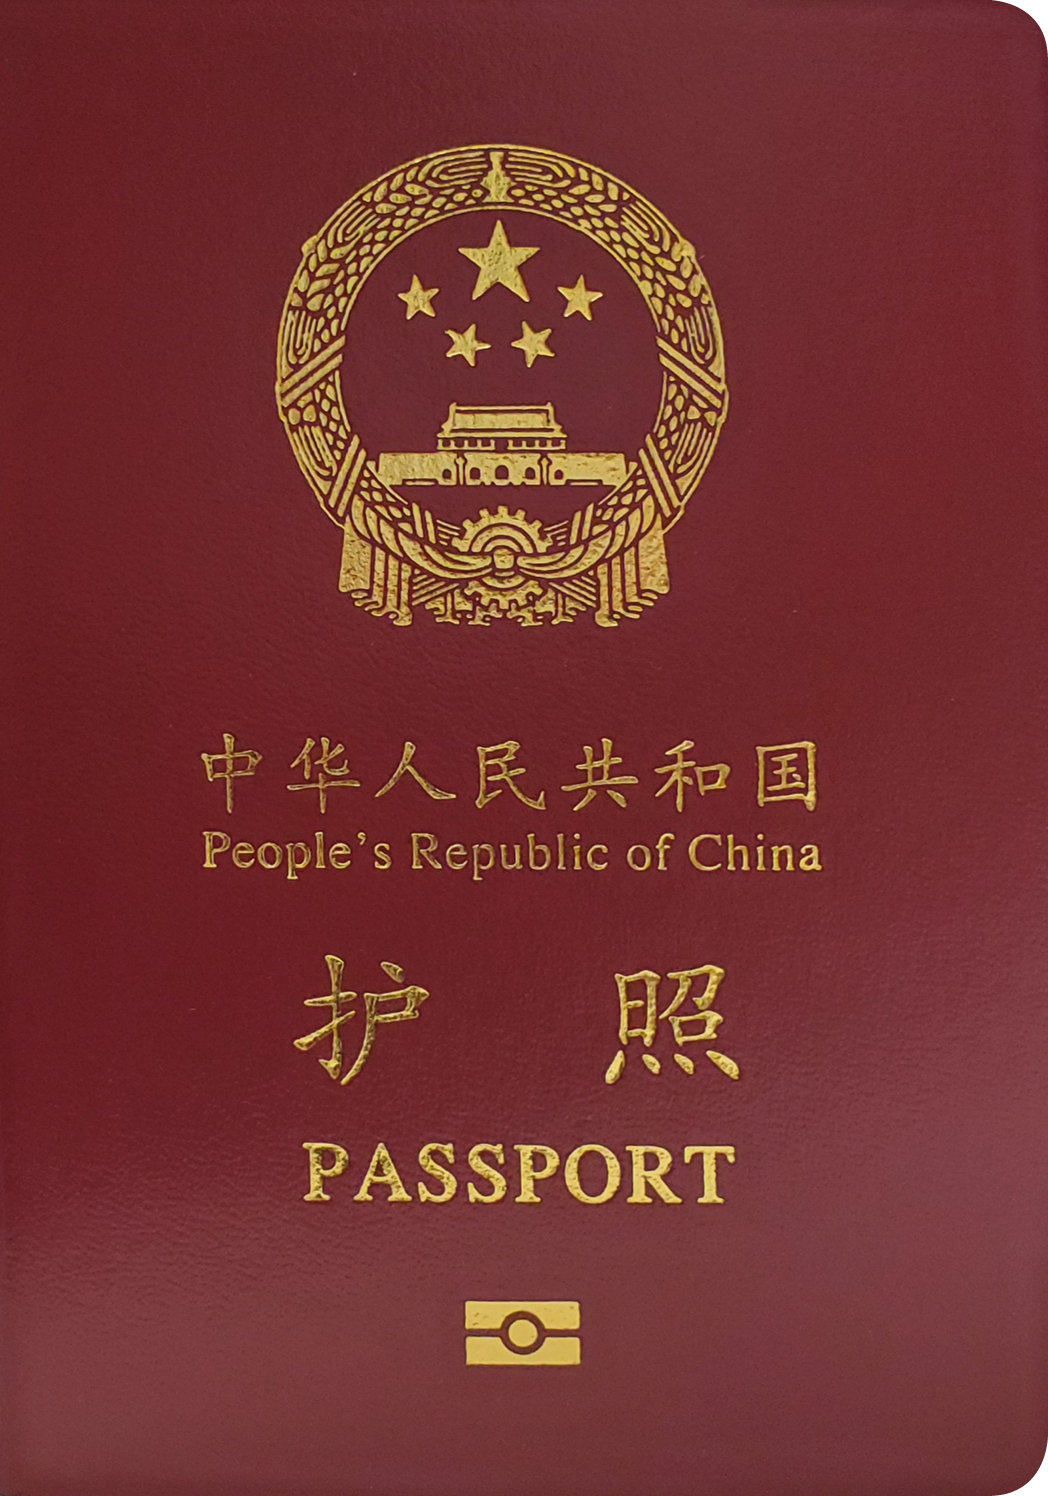 A regular or ordinary Chinese passport - Front side